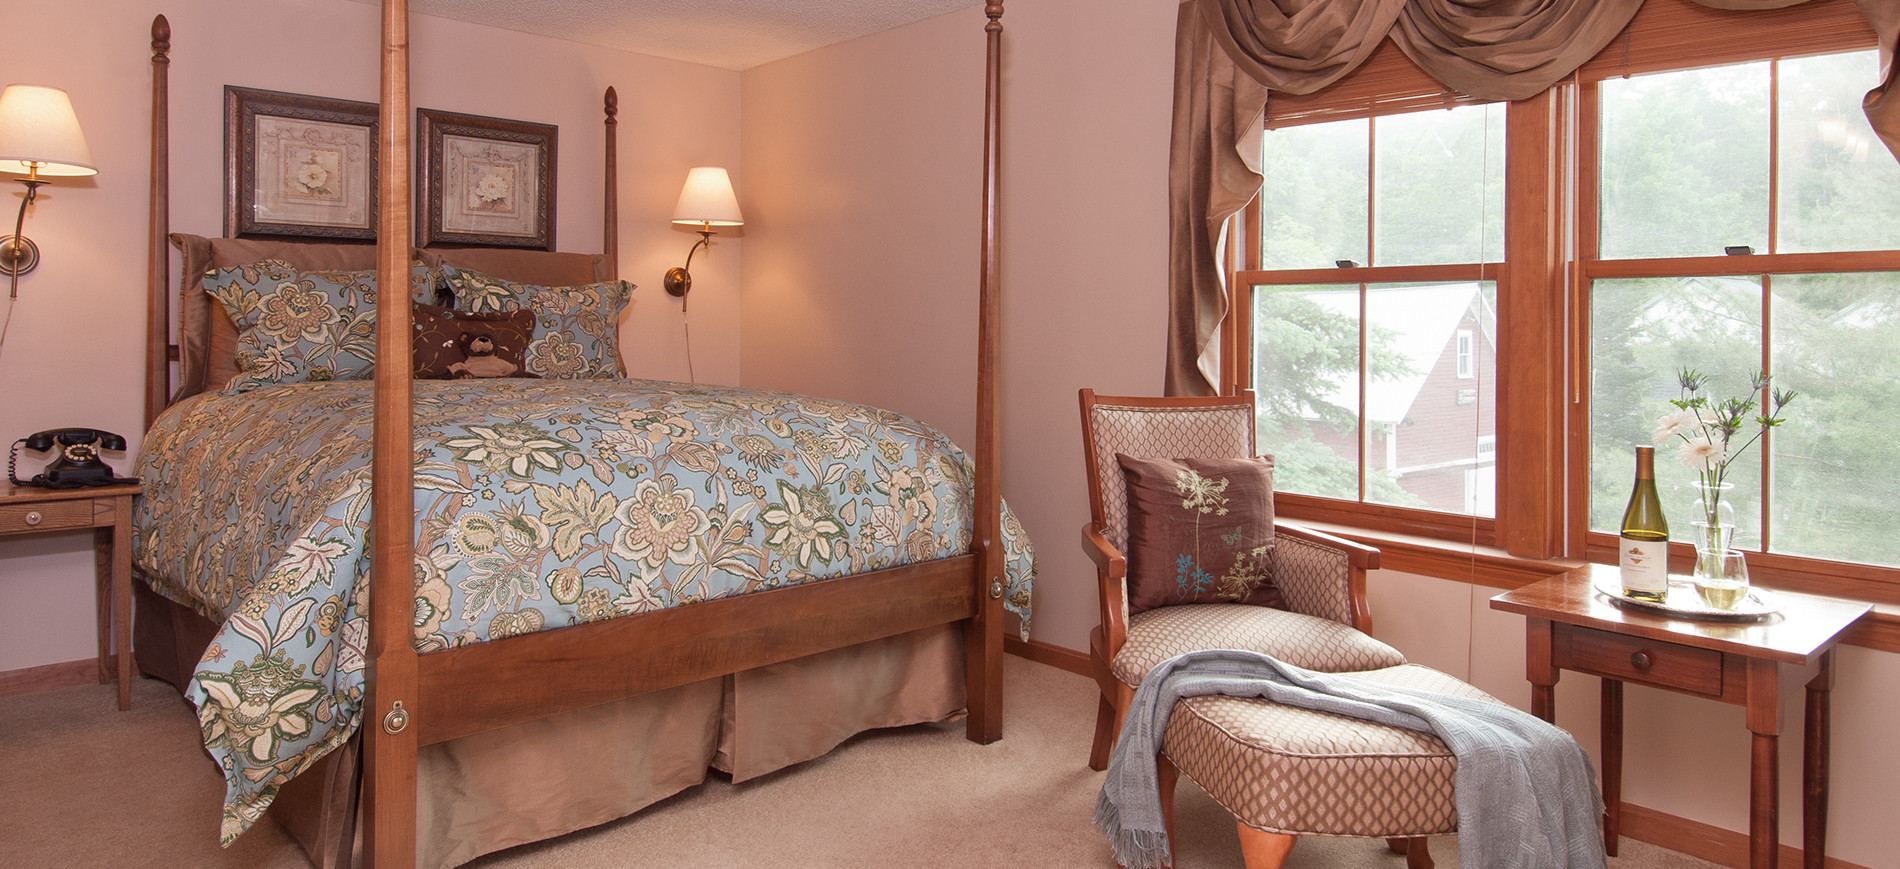 queen four poster bed with aqua & beige bedding, wall lamps on each side of bed, beige arm chair with ottoman, aqua shawl, table with wine & flowers